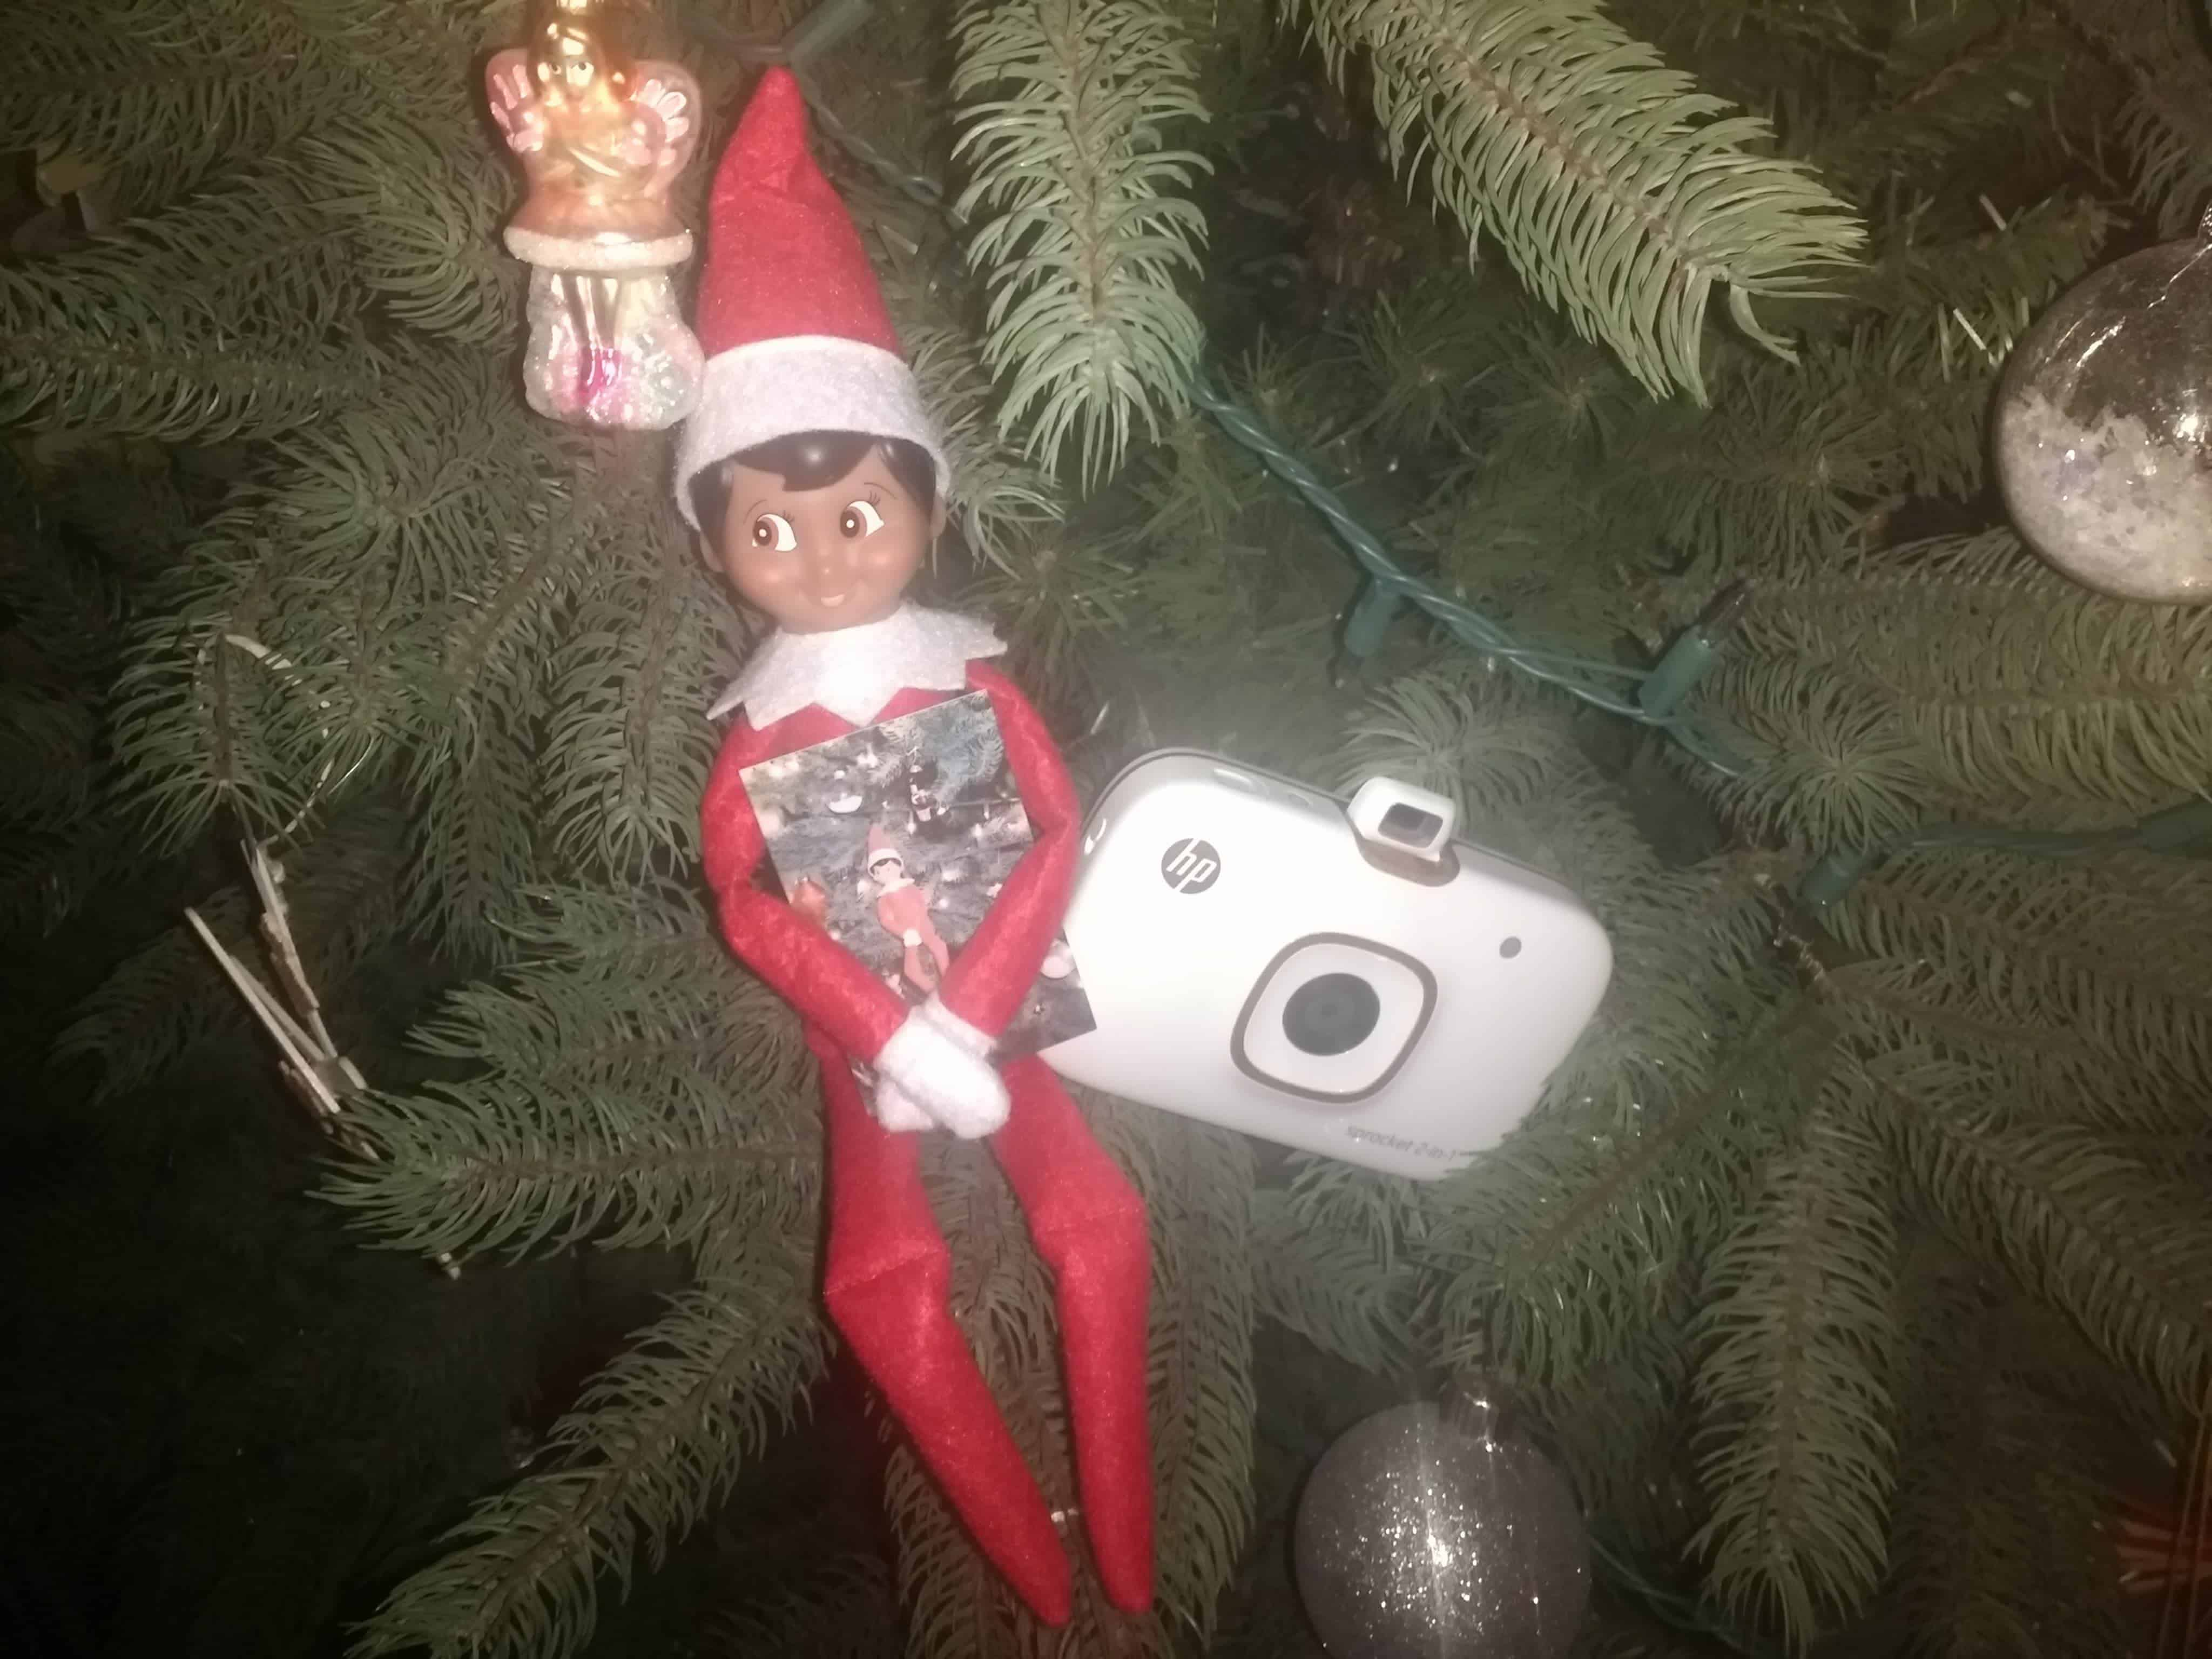 An easy #elfontheshelf idea- take an #elfie with the HP 2-in-1 Sprocket! #ad